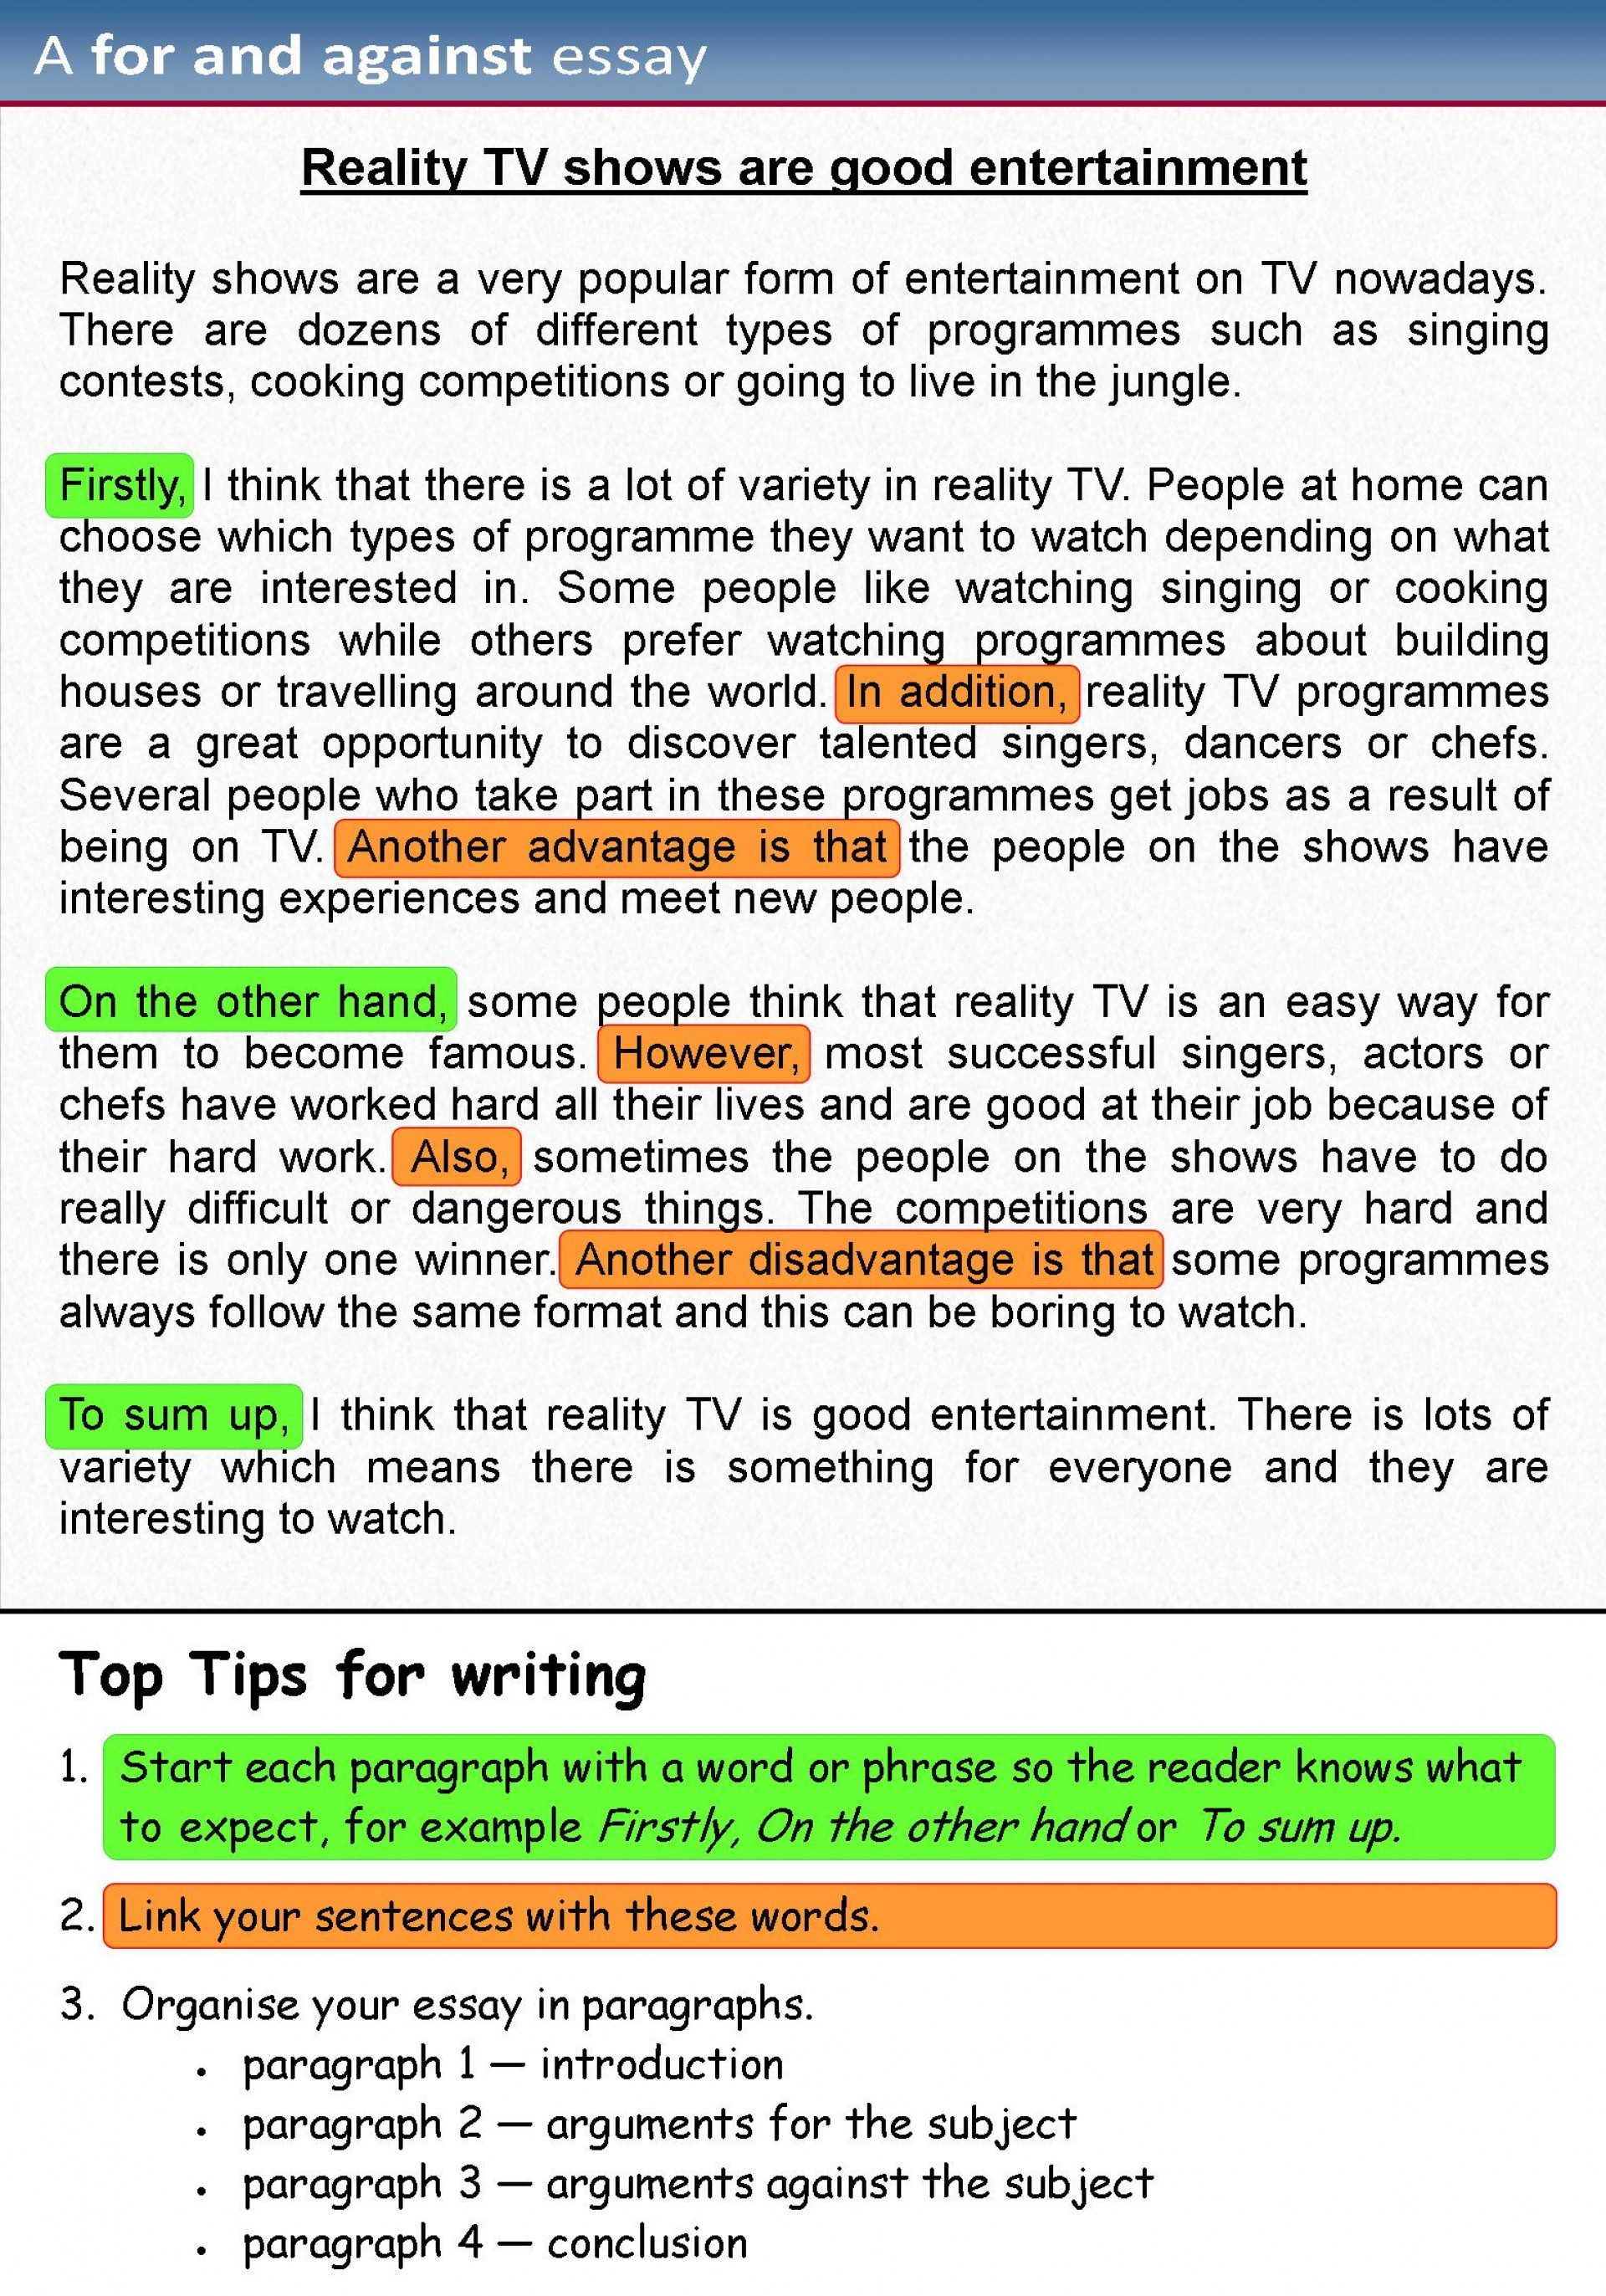 019 Essay Example How To Write And For Against 1 Unique An Conclusion University Level Outline College Placement Test 1920